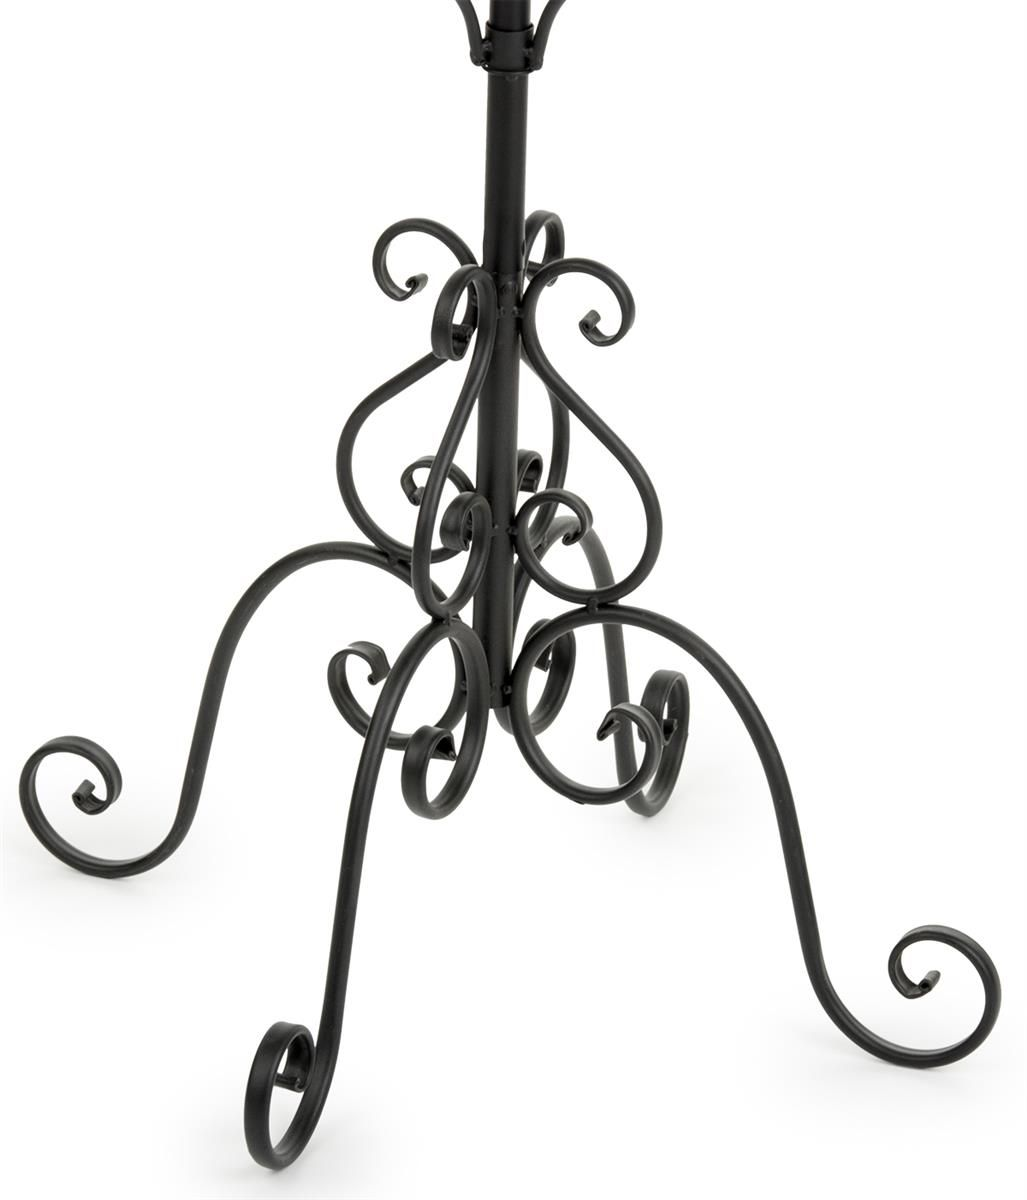 Wrought Iron Coat Rack With Rotating Hooks